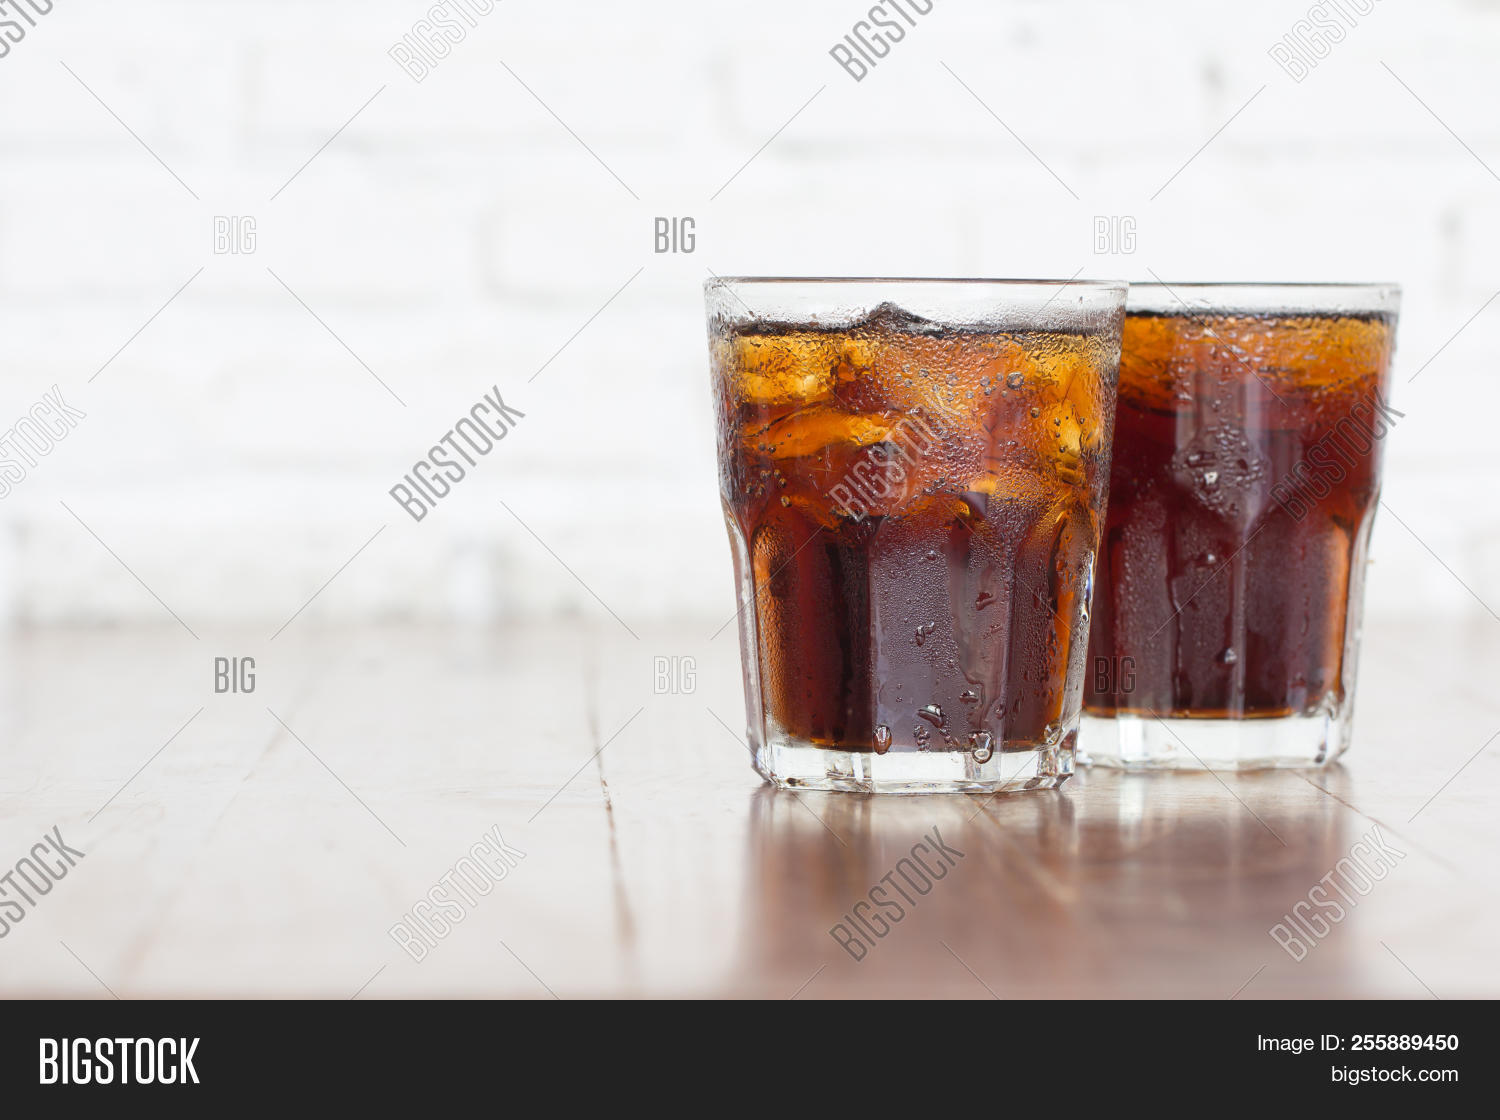 Cool Iced Soft Drink Image Photo Free Trial Bigstock